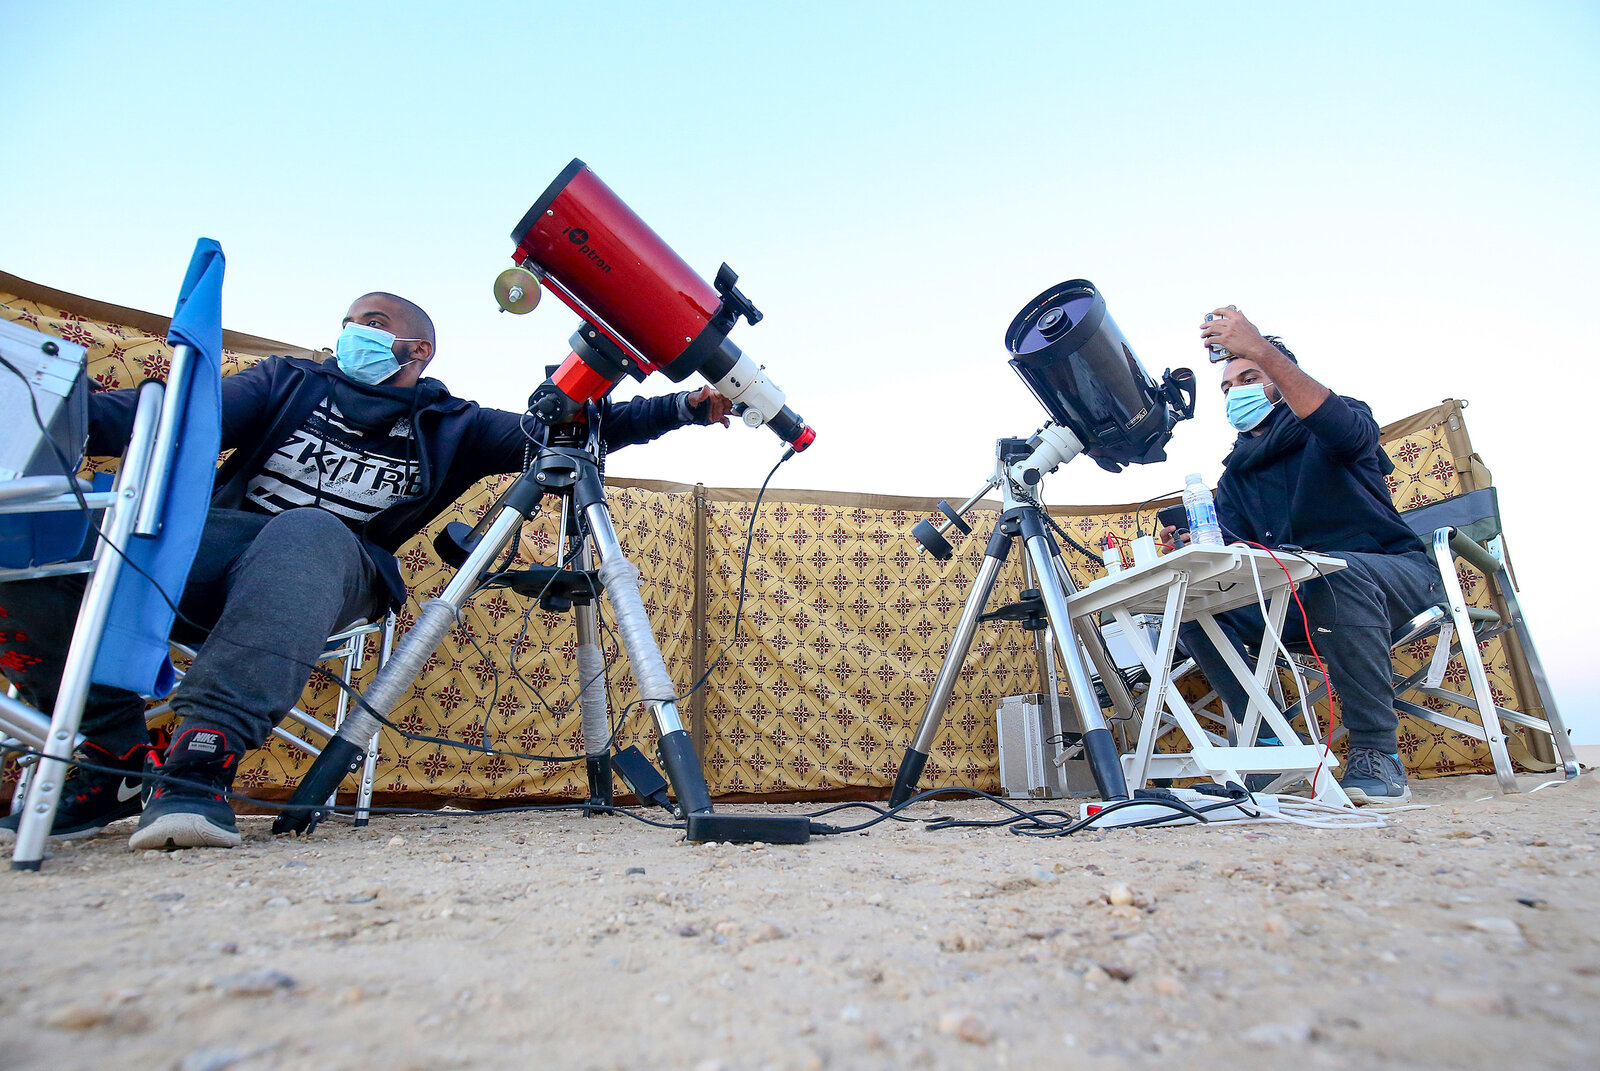 Kuwaiti astrophotographers Mohammad al-Obaidi, right, and Abdullah al-Harbi follow the Great Conjunction in al-Salmi district, a desert area west of Kuwait City.